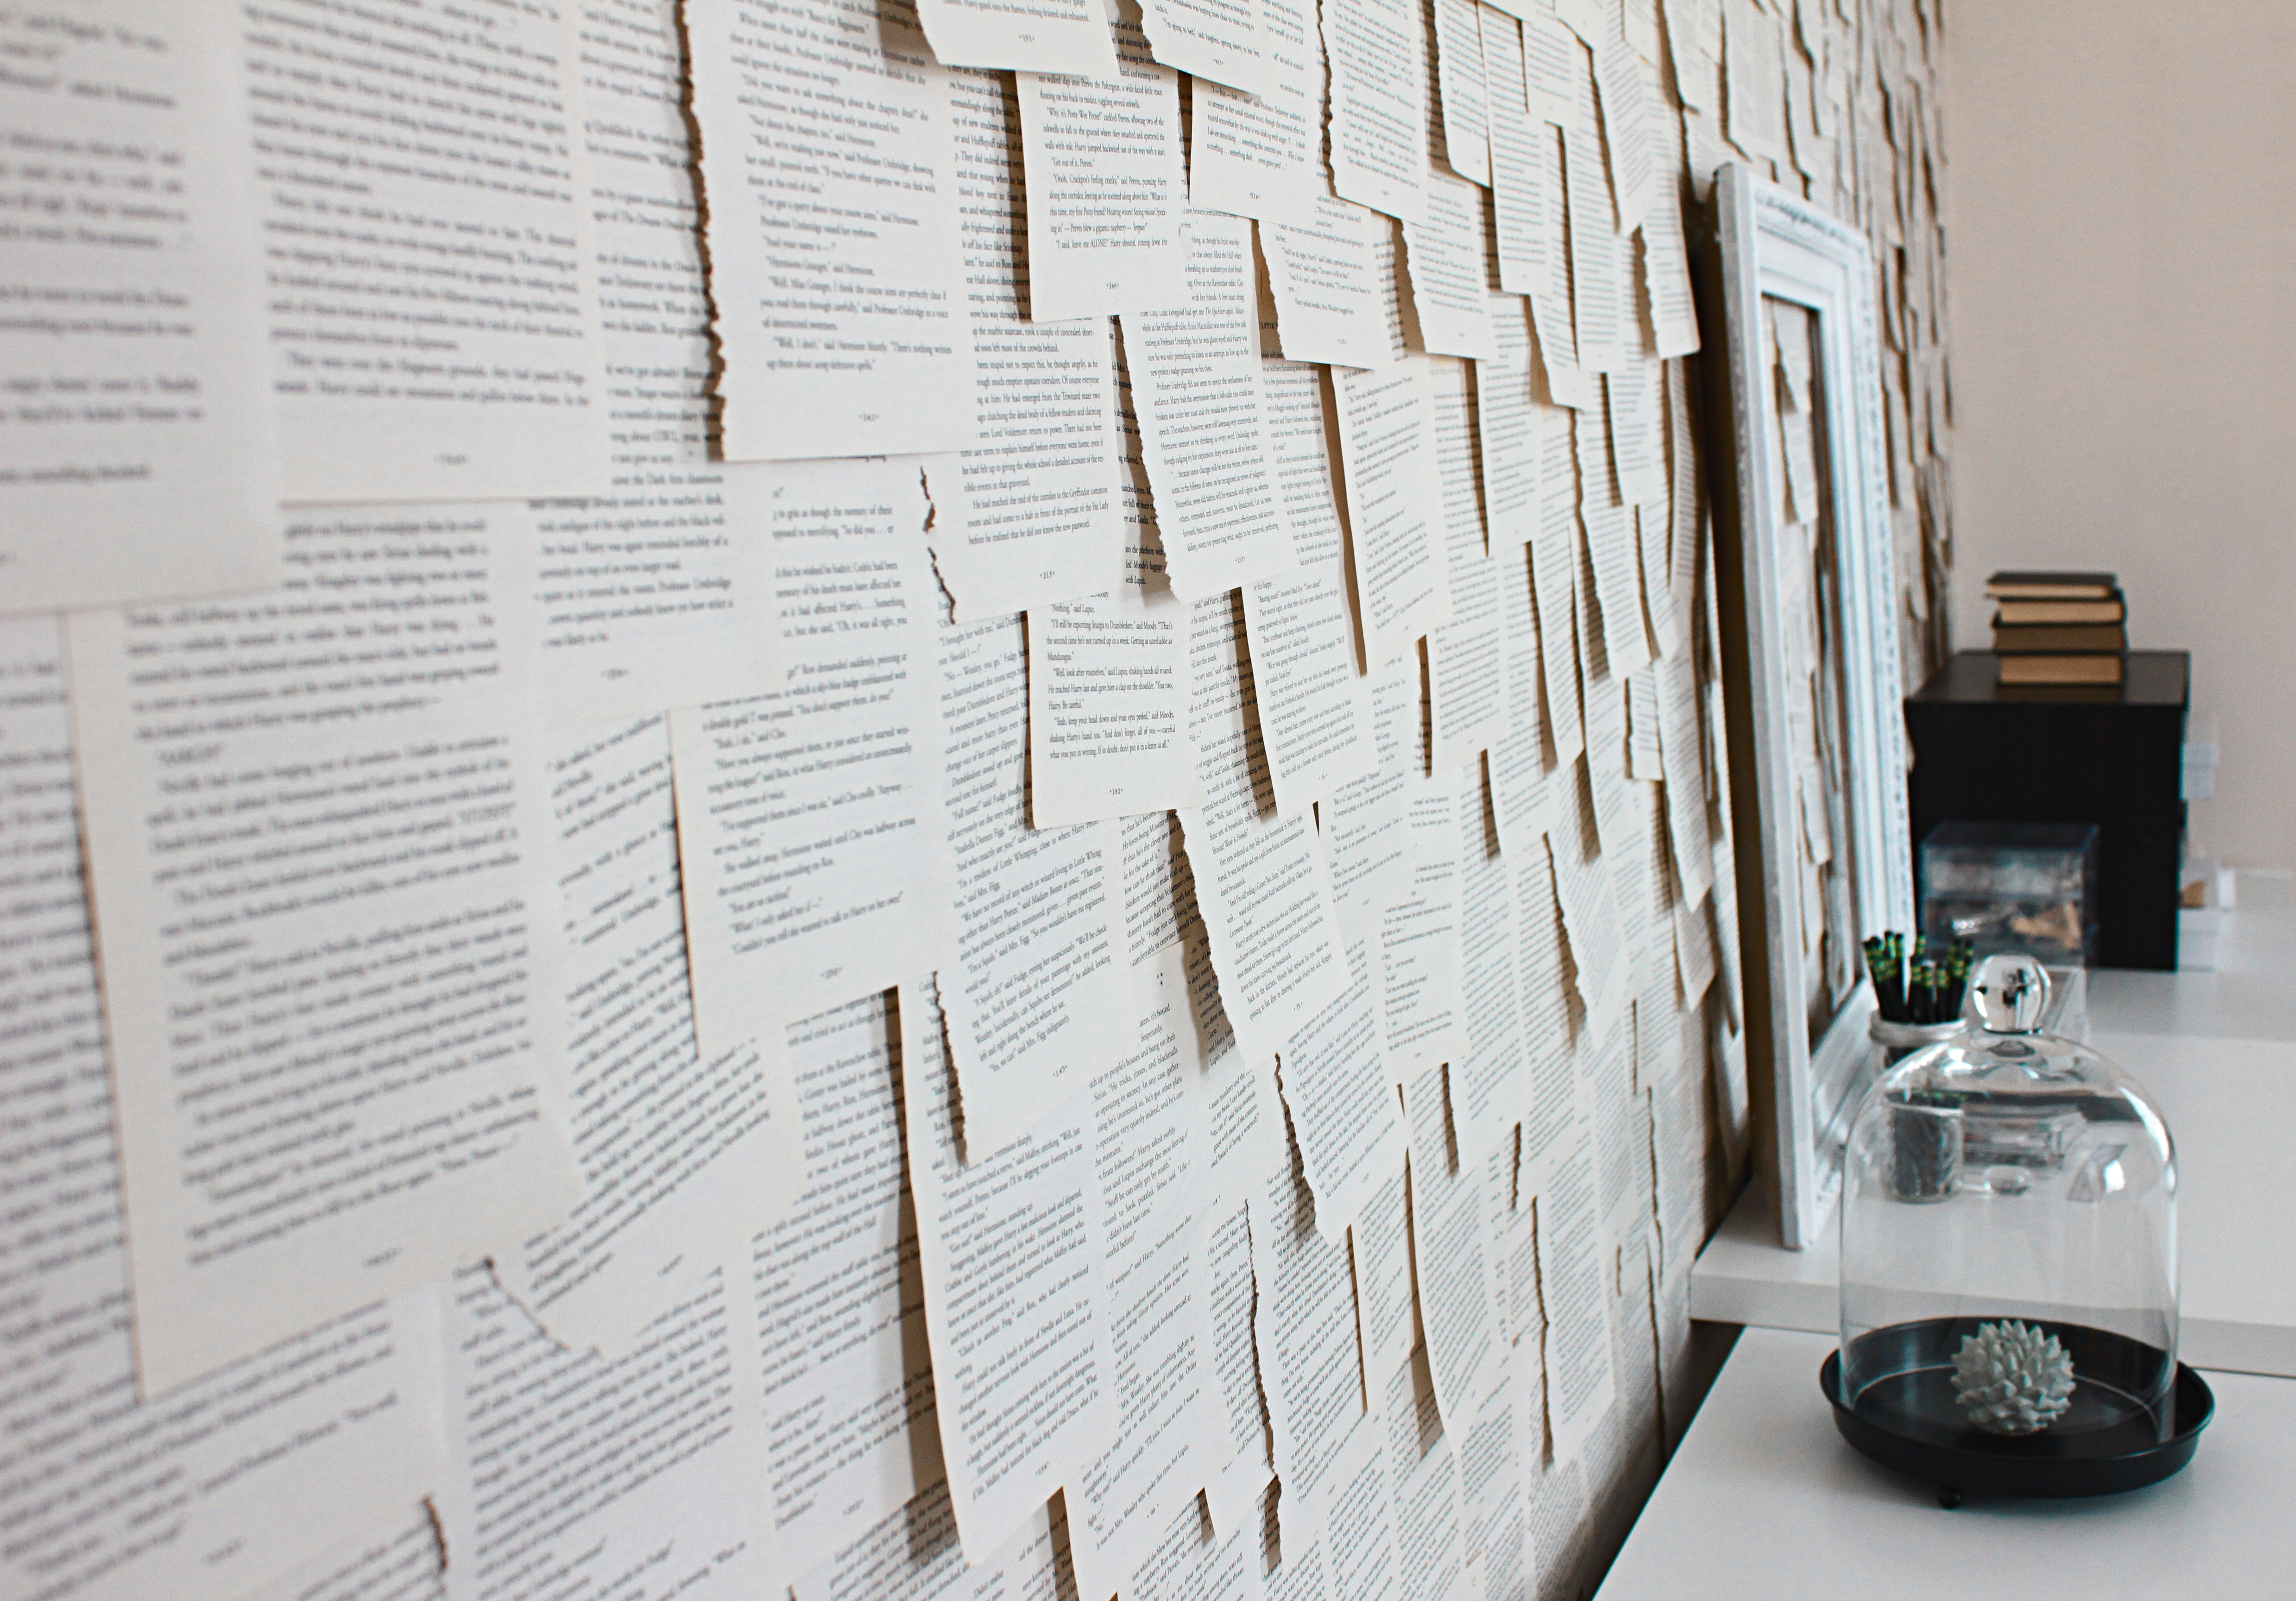 Paper Notes Stuck to a Wall